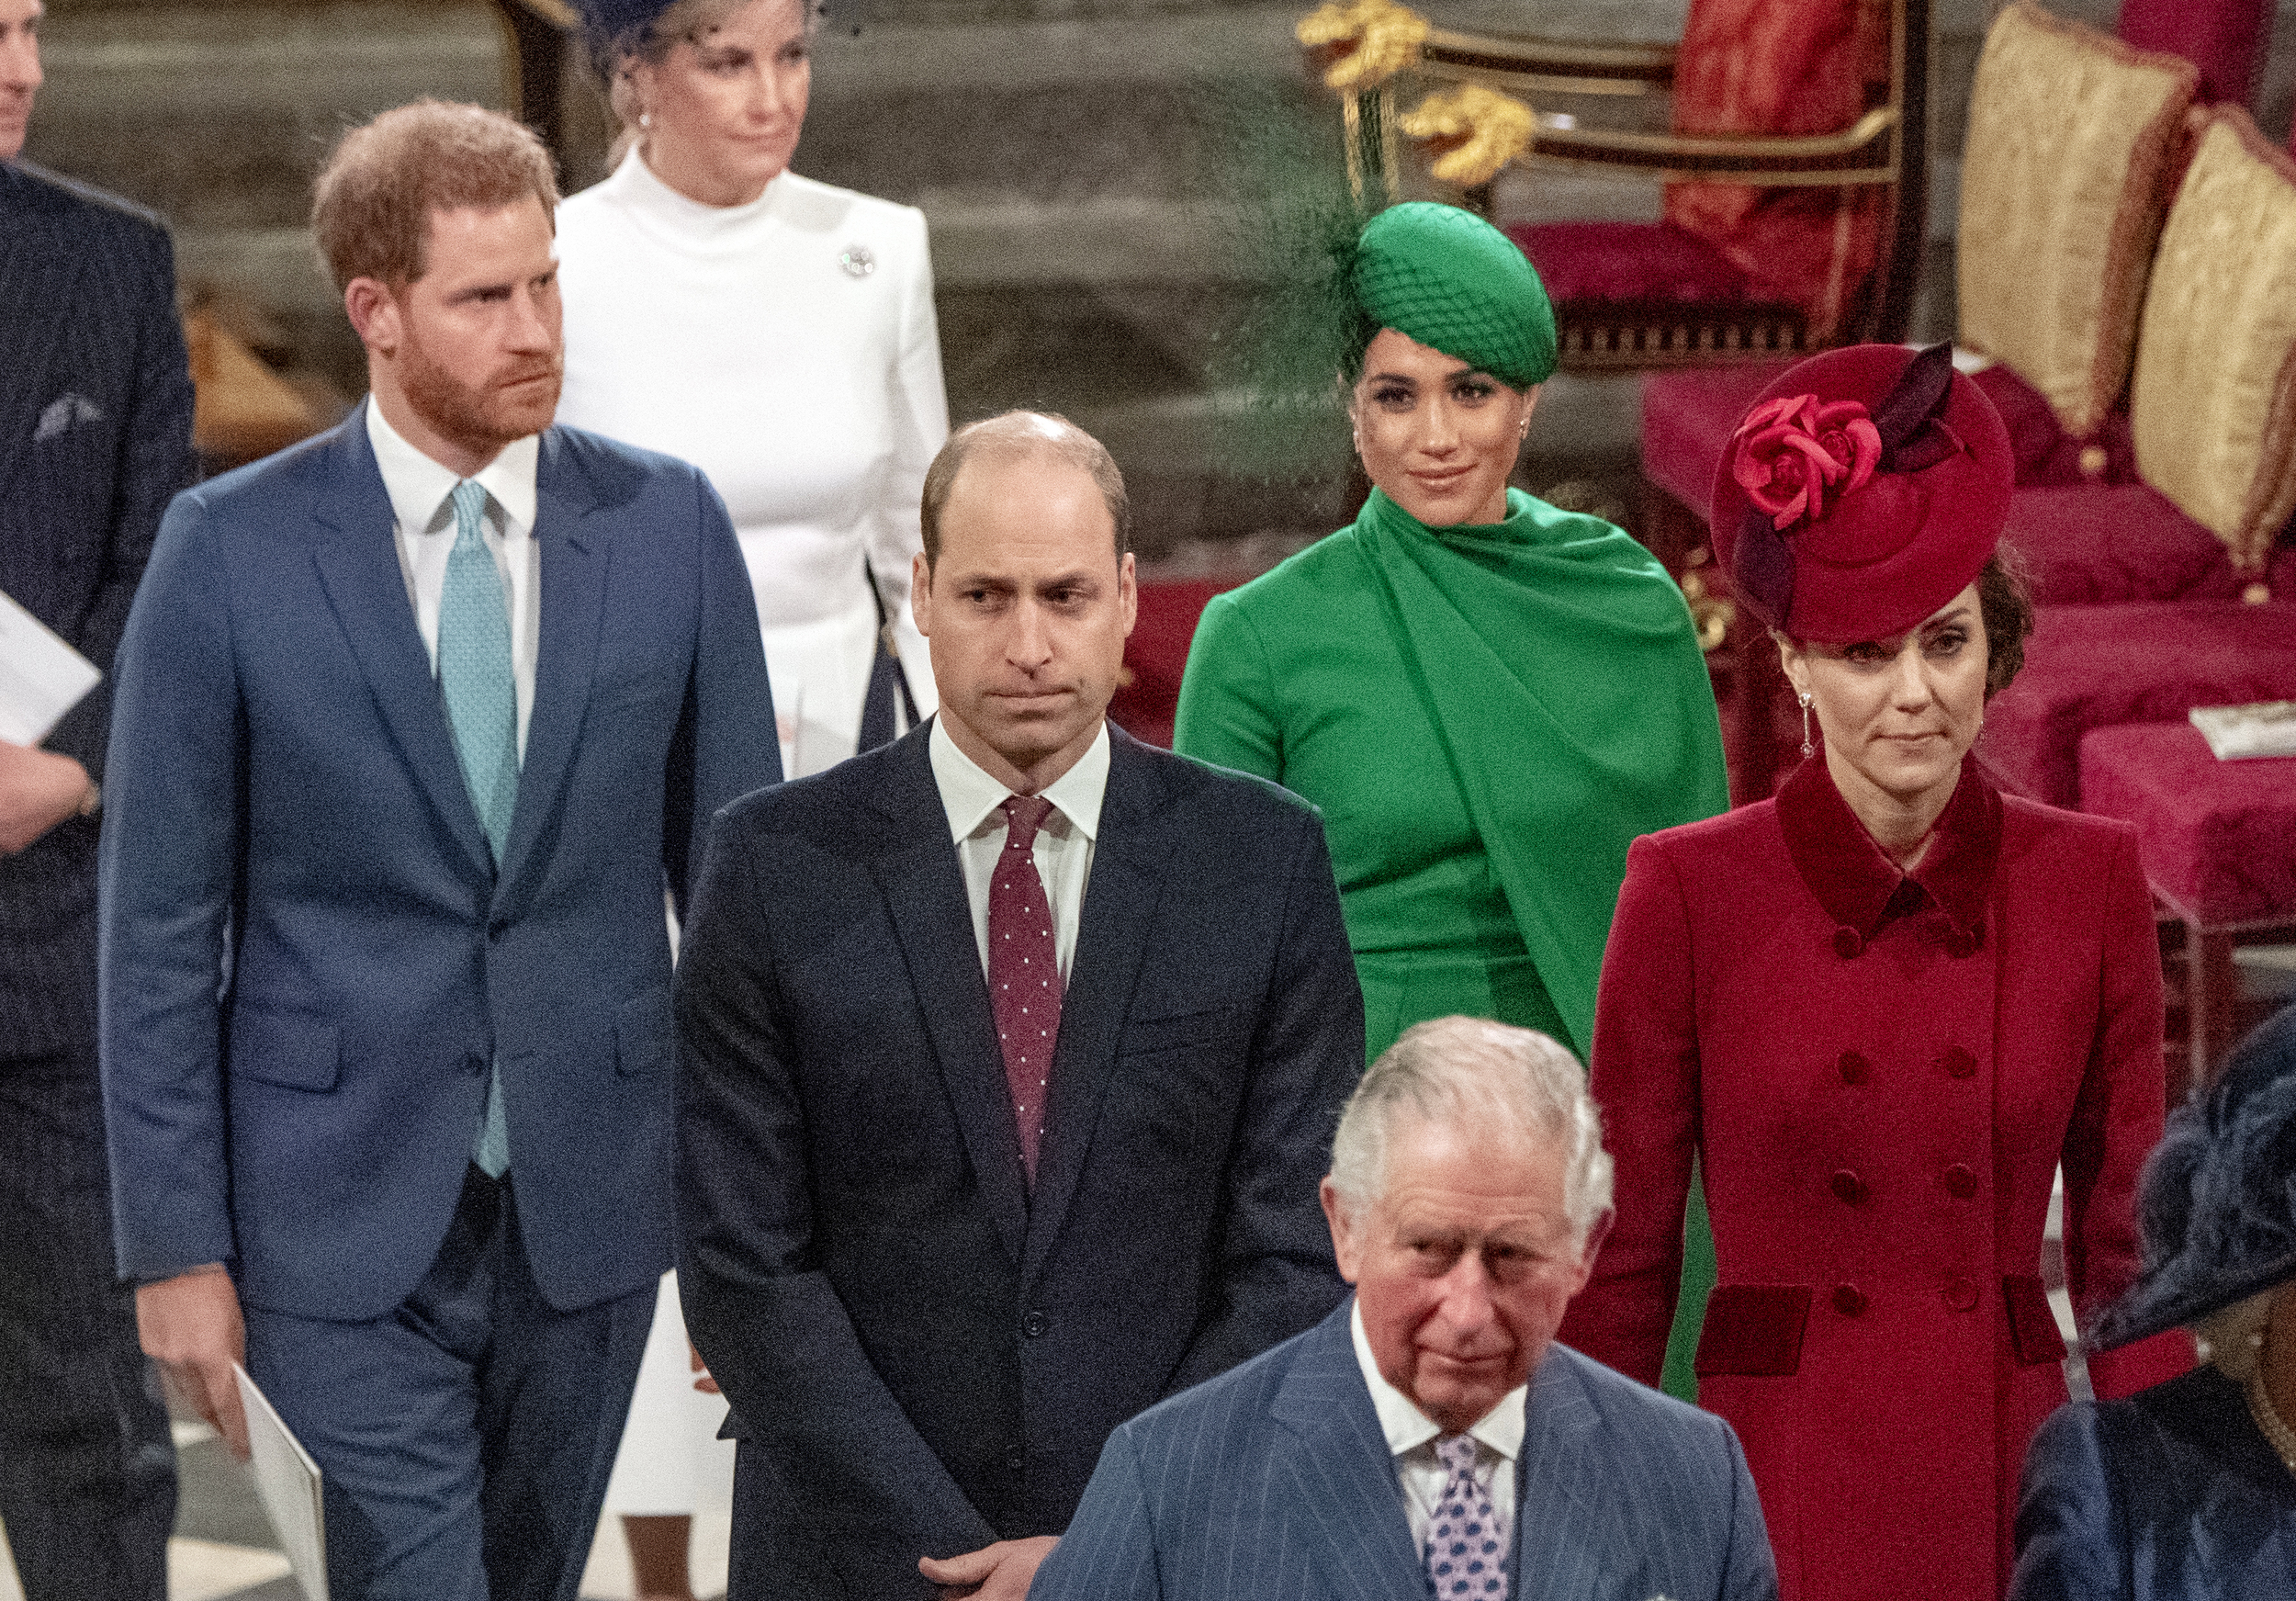 Commonwealth Day Service, Prince Harry and Meghan Markle pictured seated behind Prince William and Kate Middleton